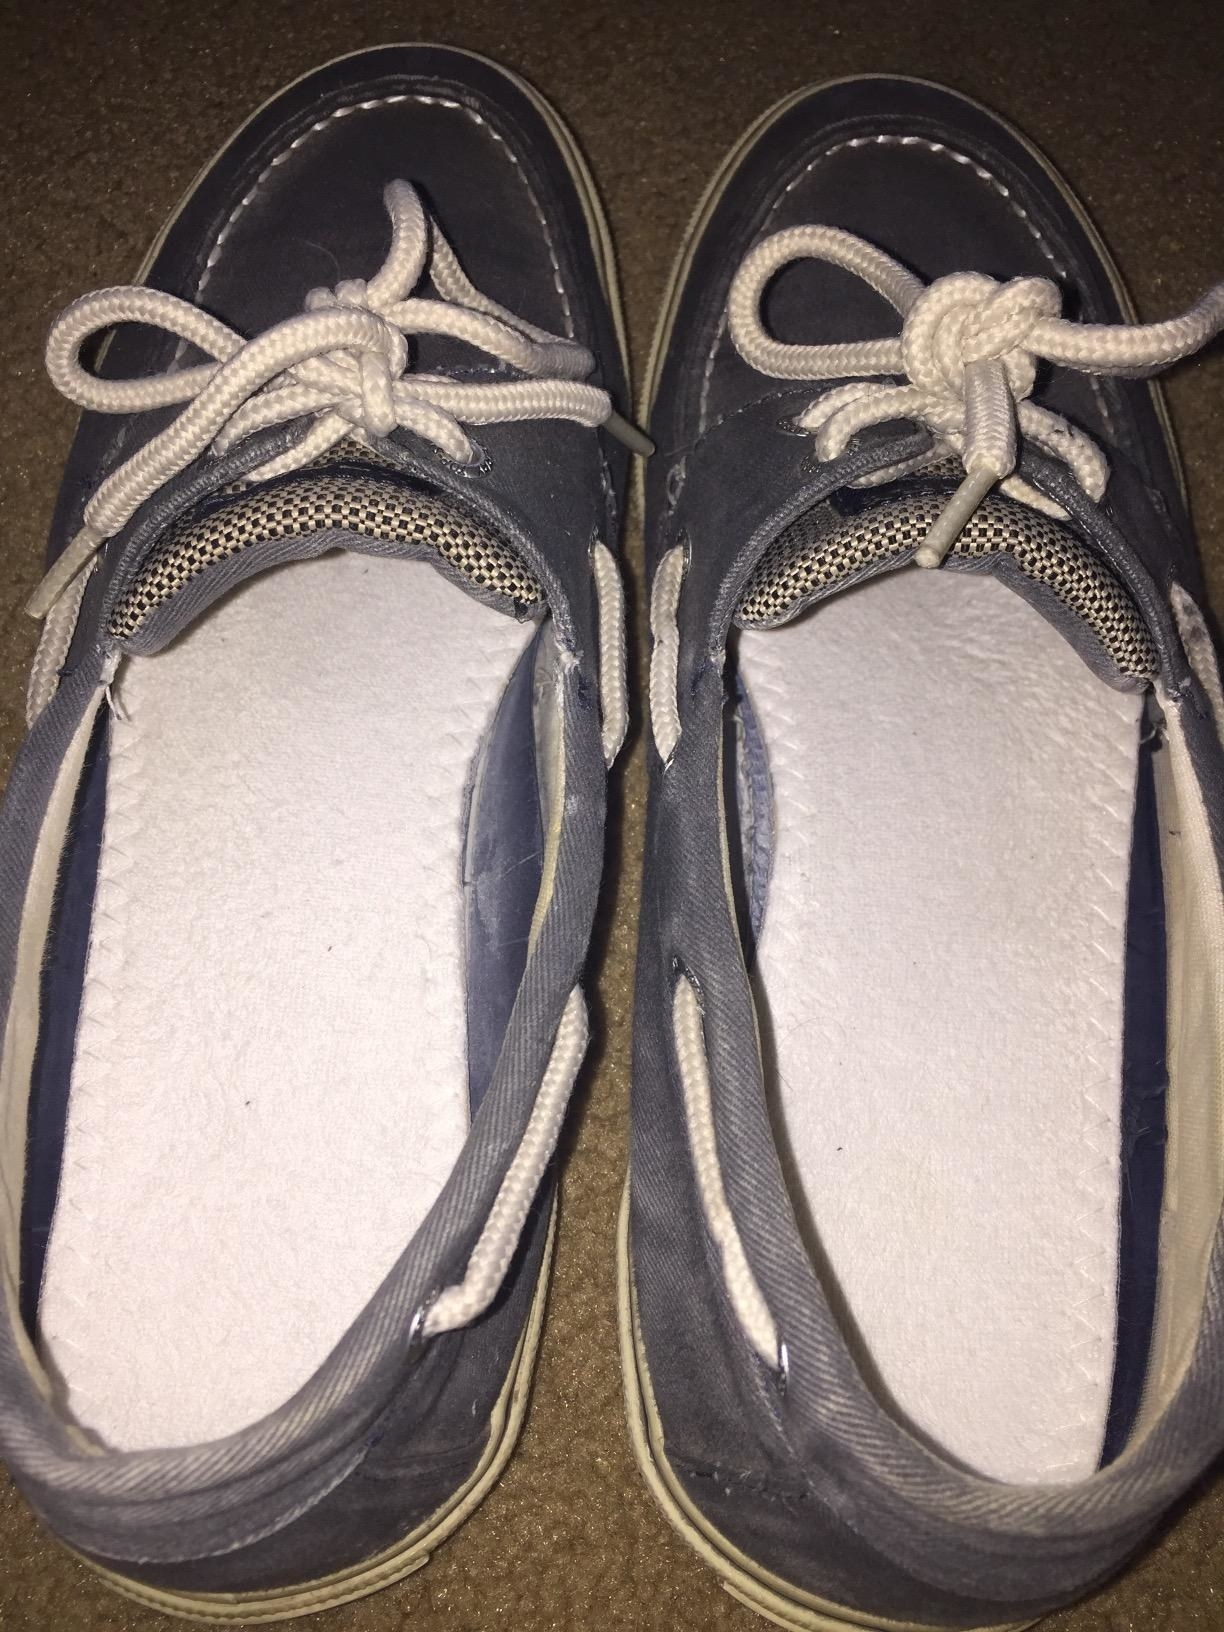 Reviewer photo of the inserts in their Sperry boat shoes